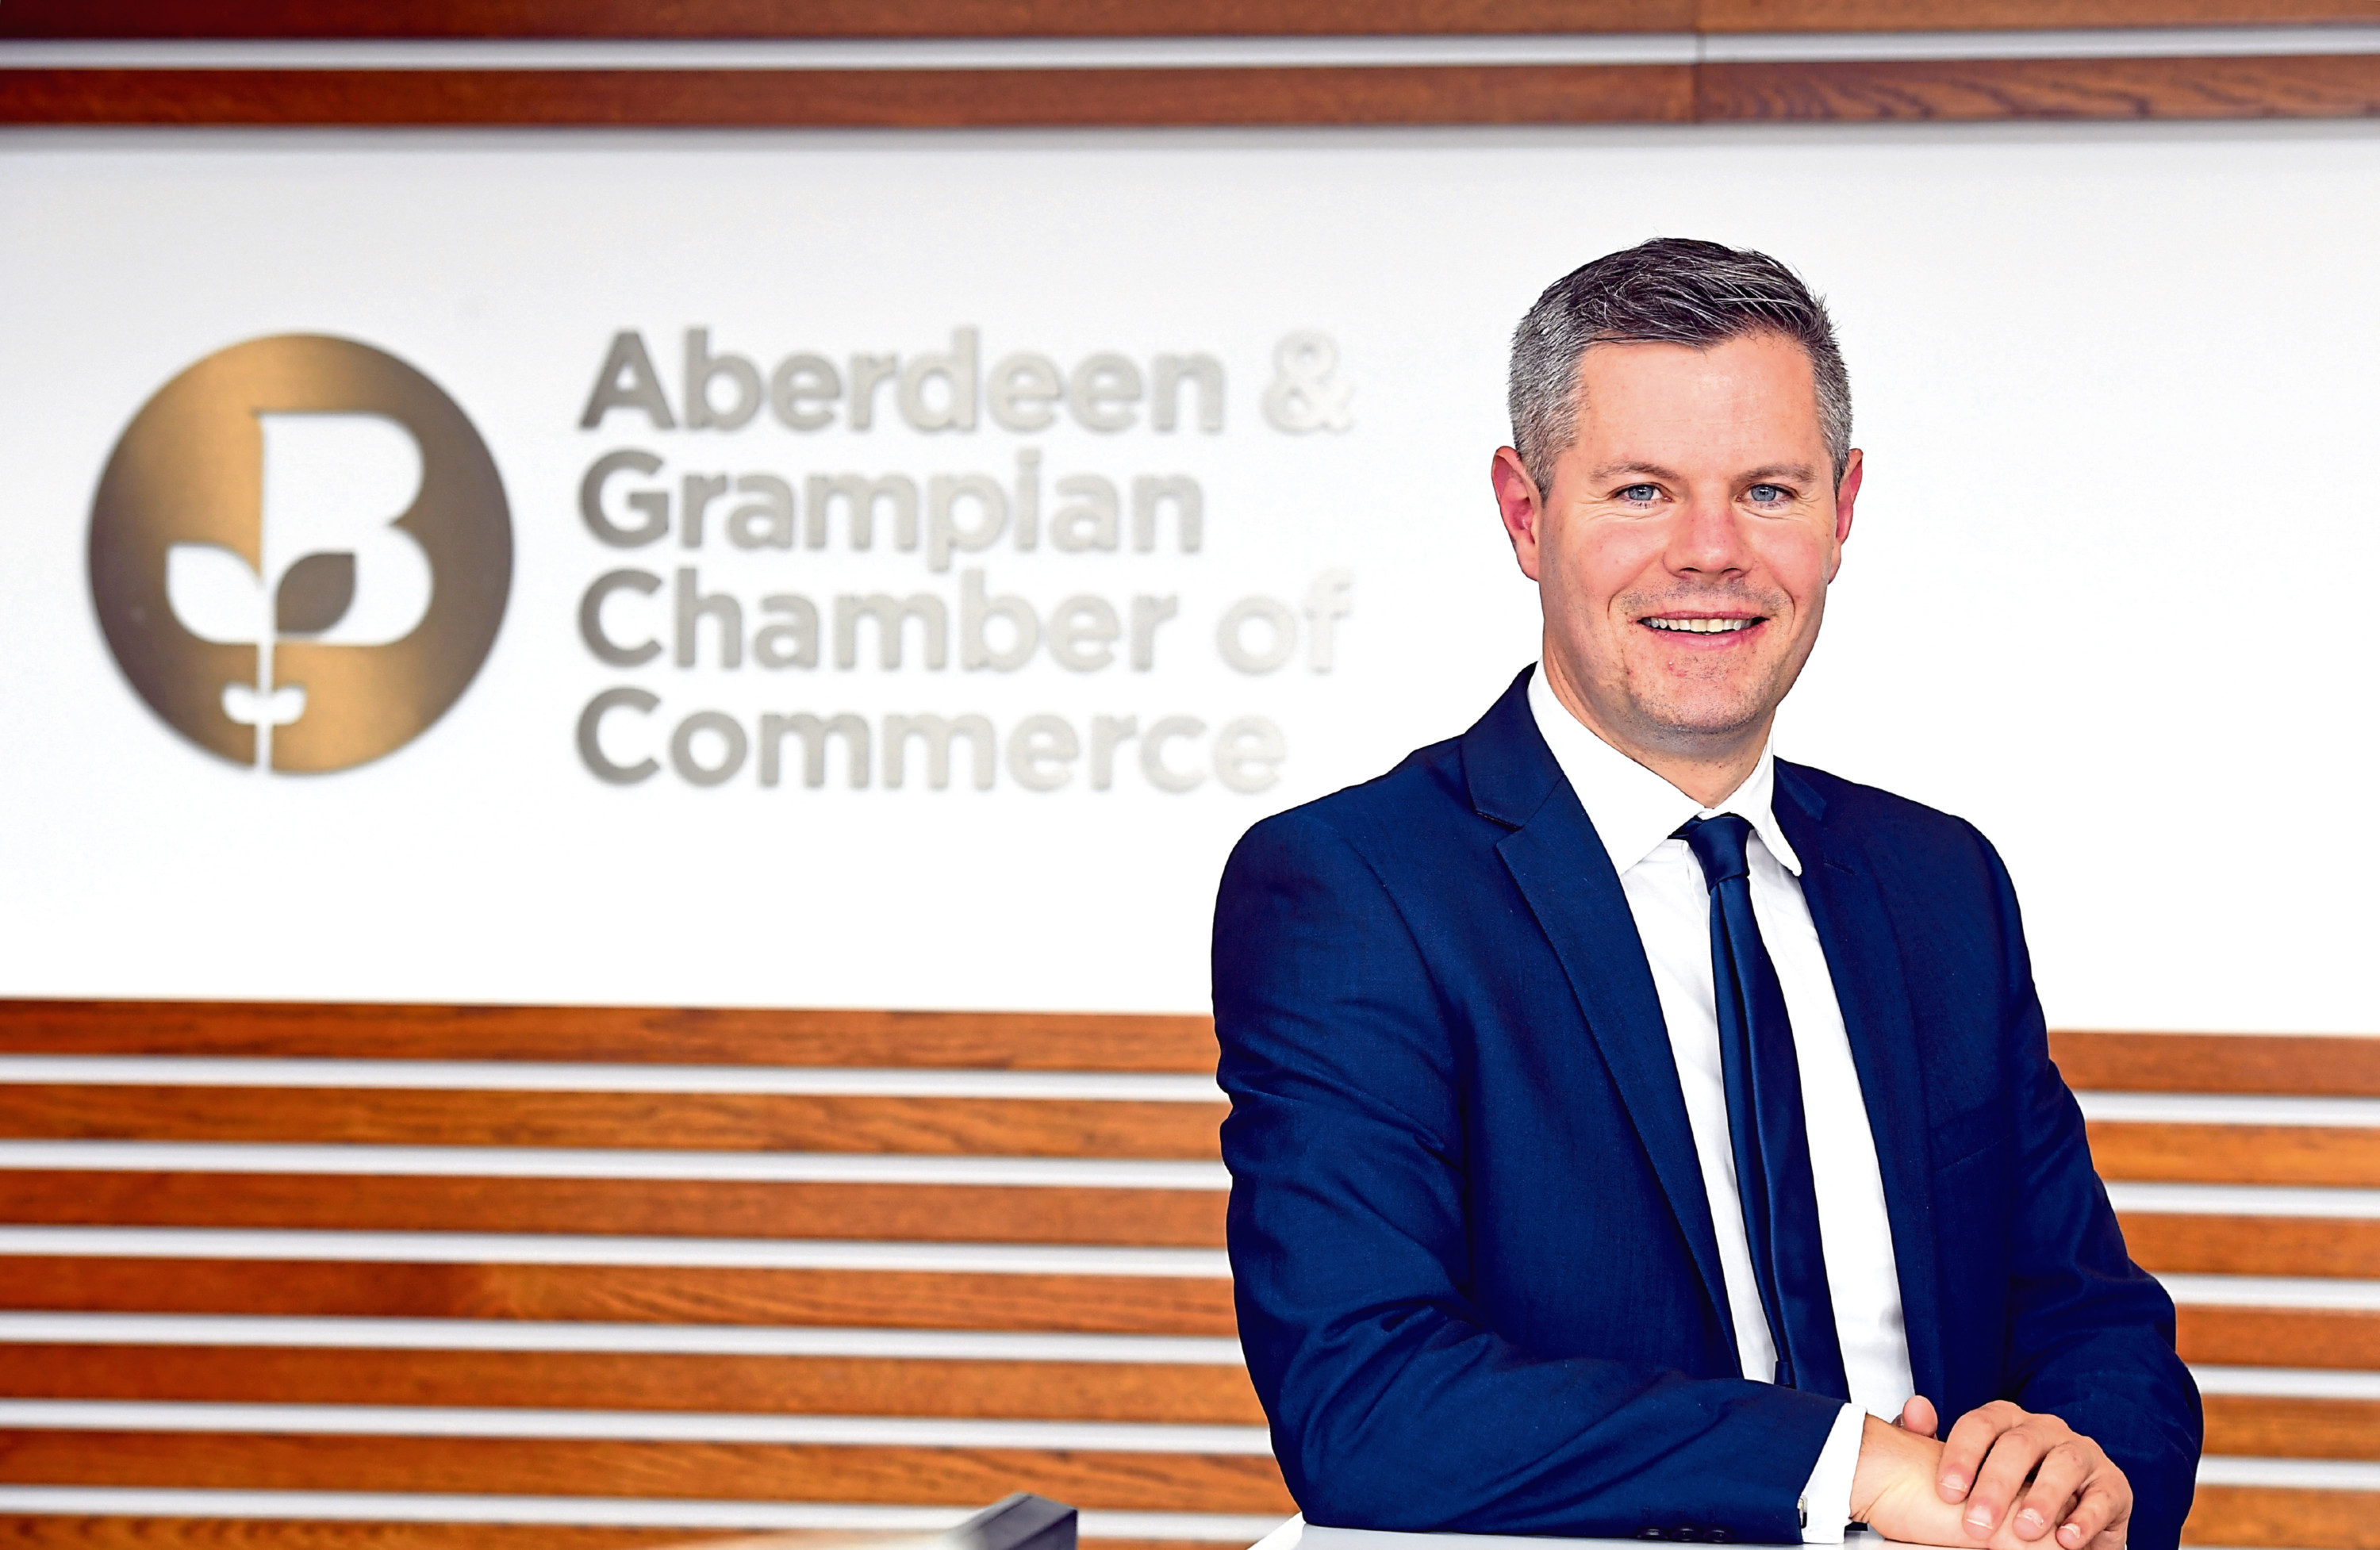 Finance Minister Derek Mackay